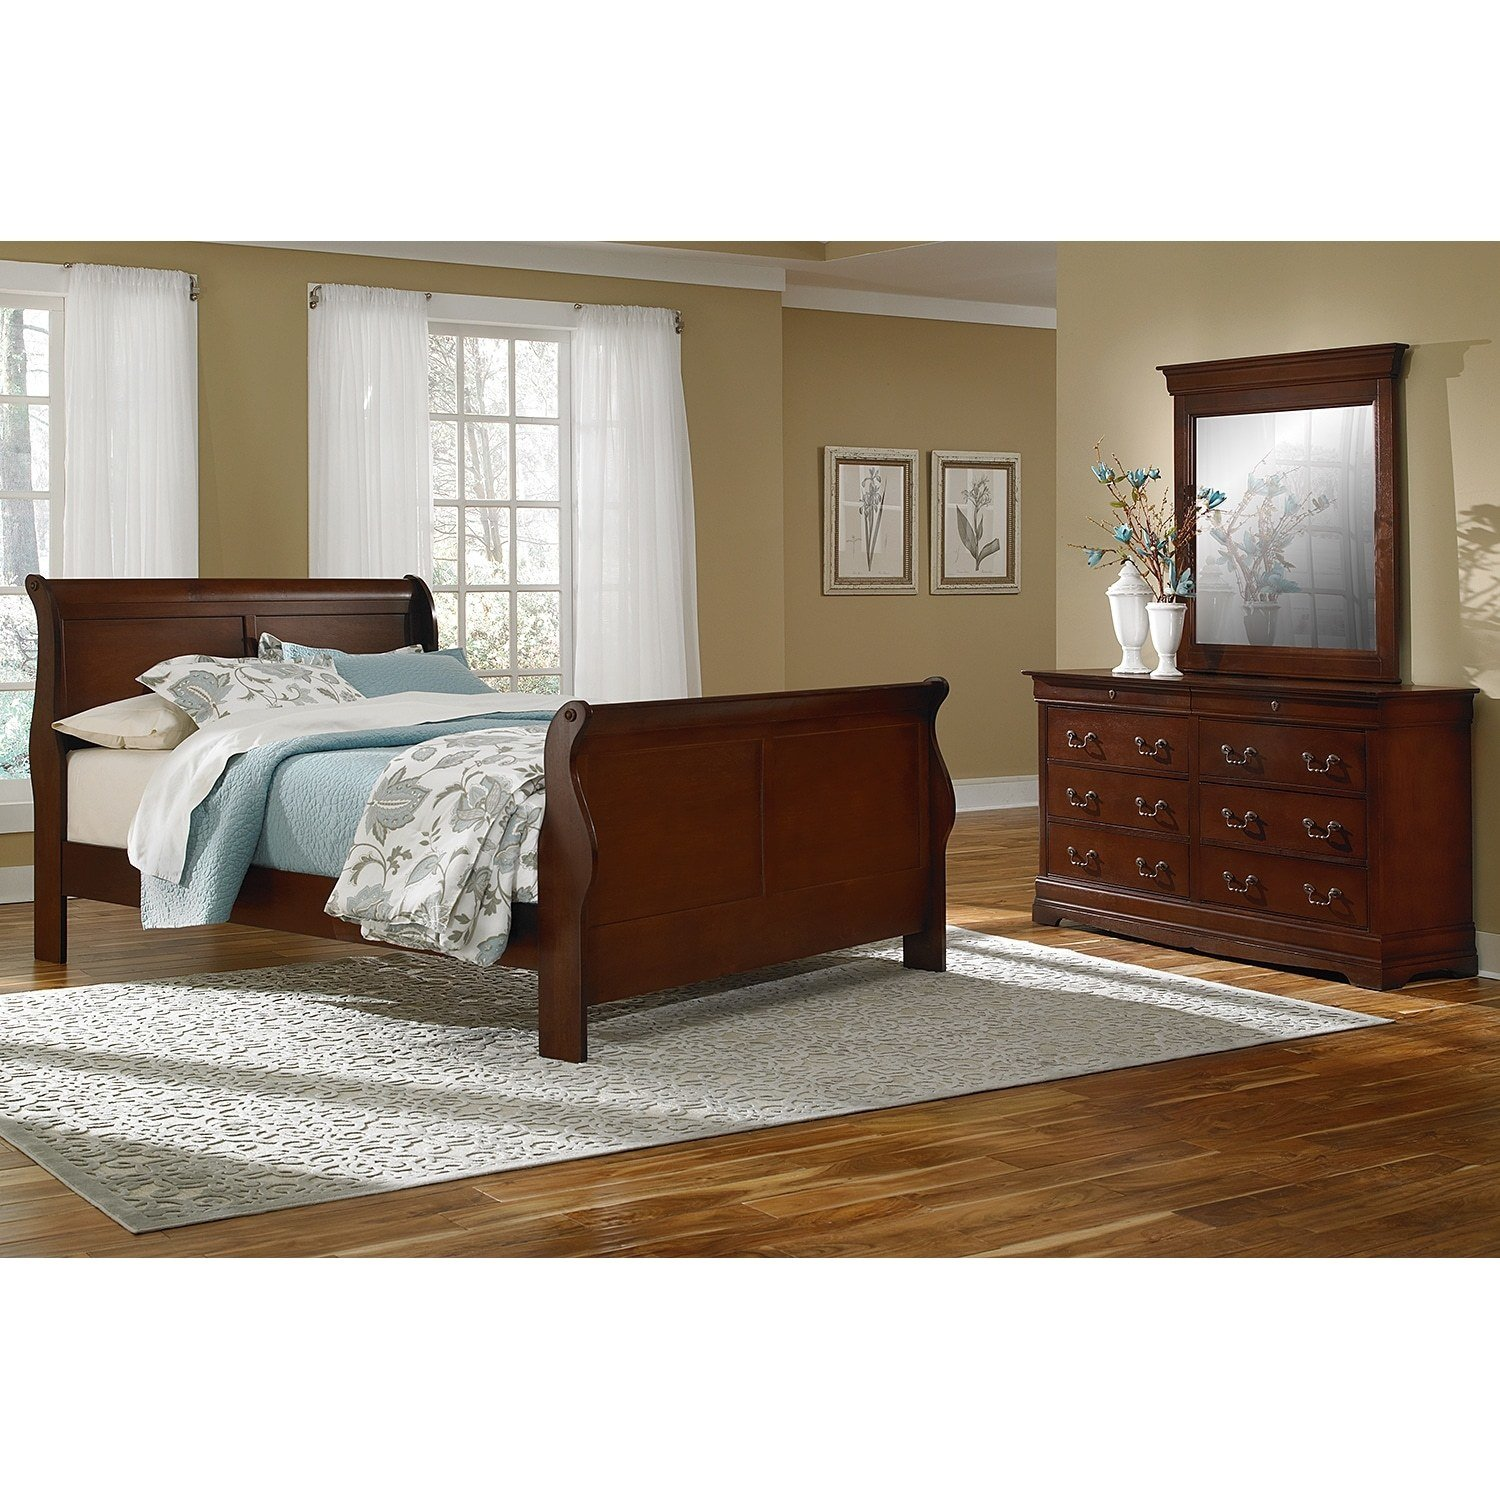 Best Neo Classic 5 Piece King Bedroom Set Cherry American With Pictures